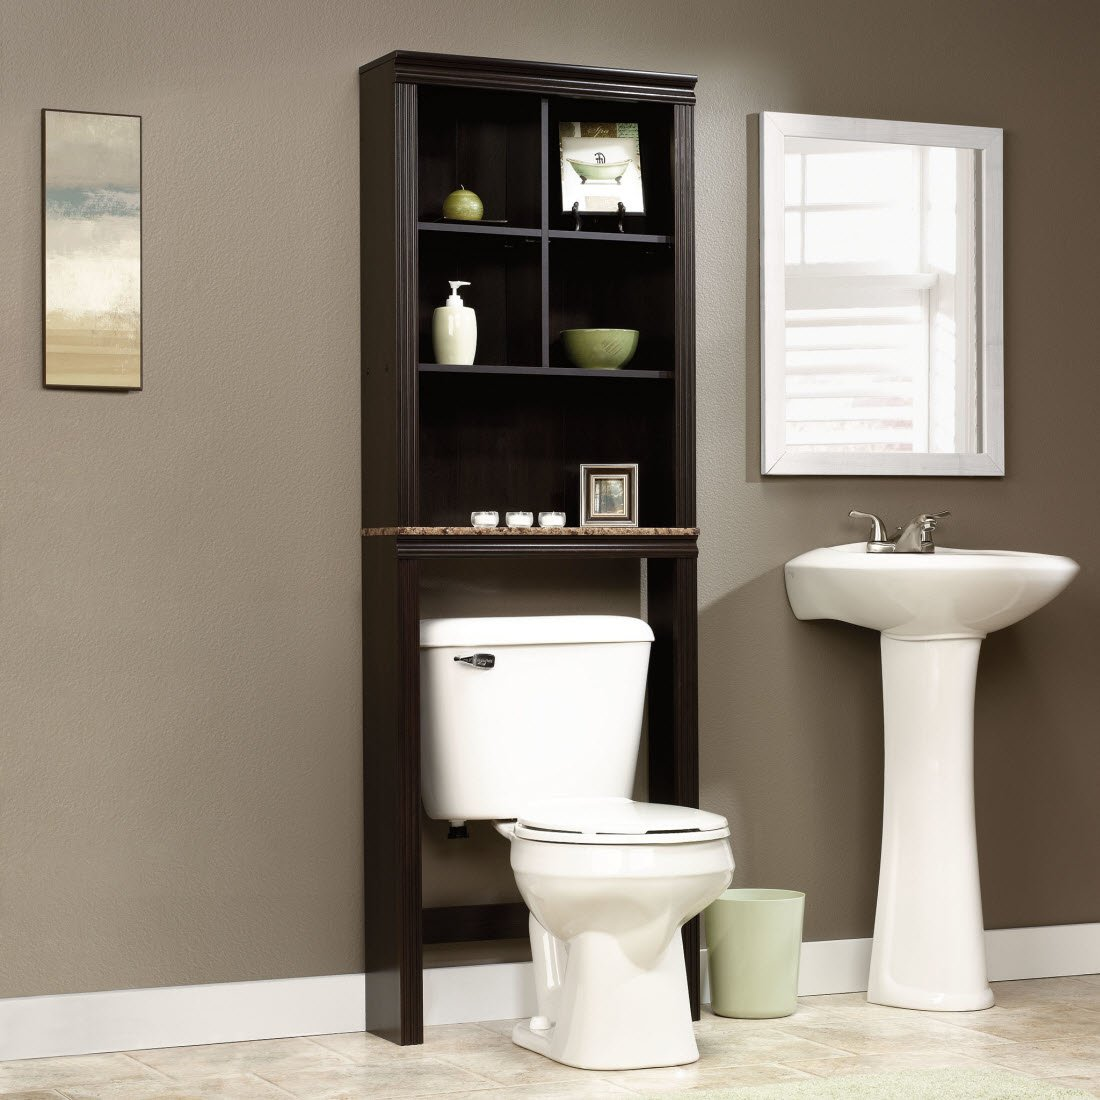 cabinets over toilet in bathroom. amazon.com: over the toilet cabinet with open shelves: kitchen \u0026 dining cabinets in bathroom .